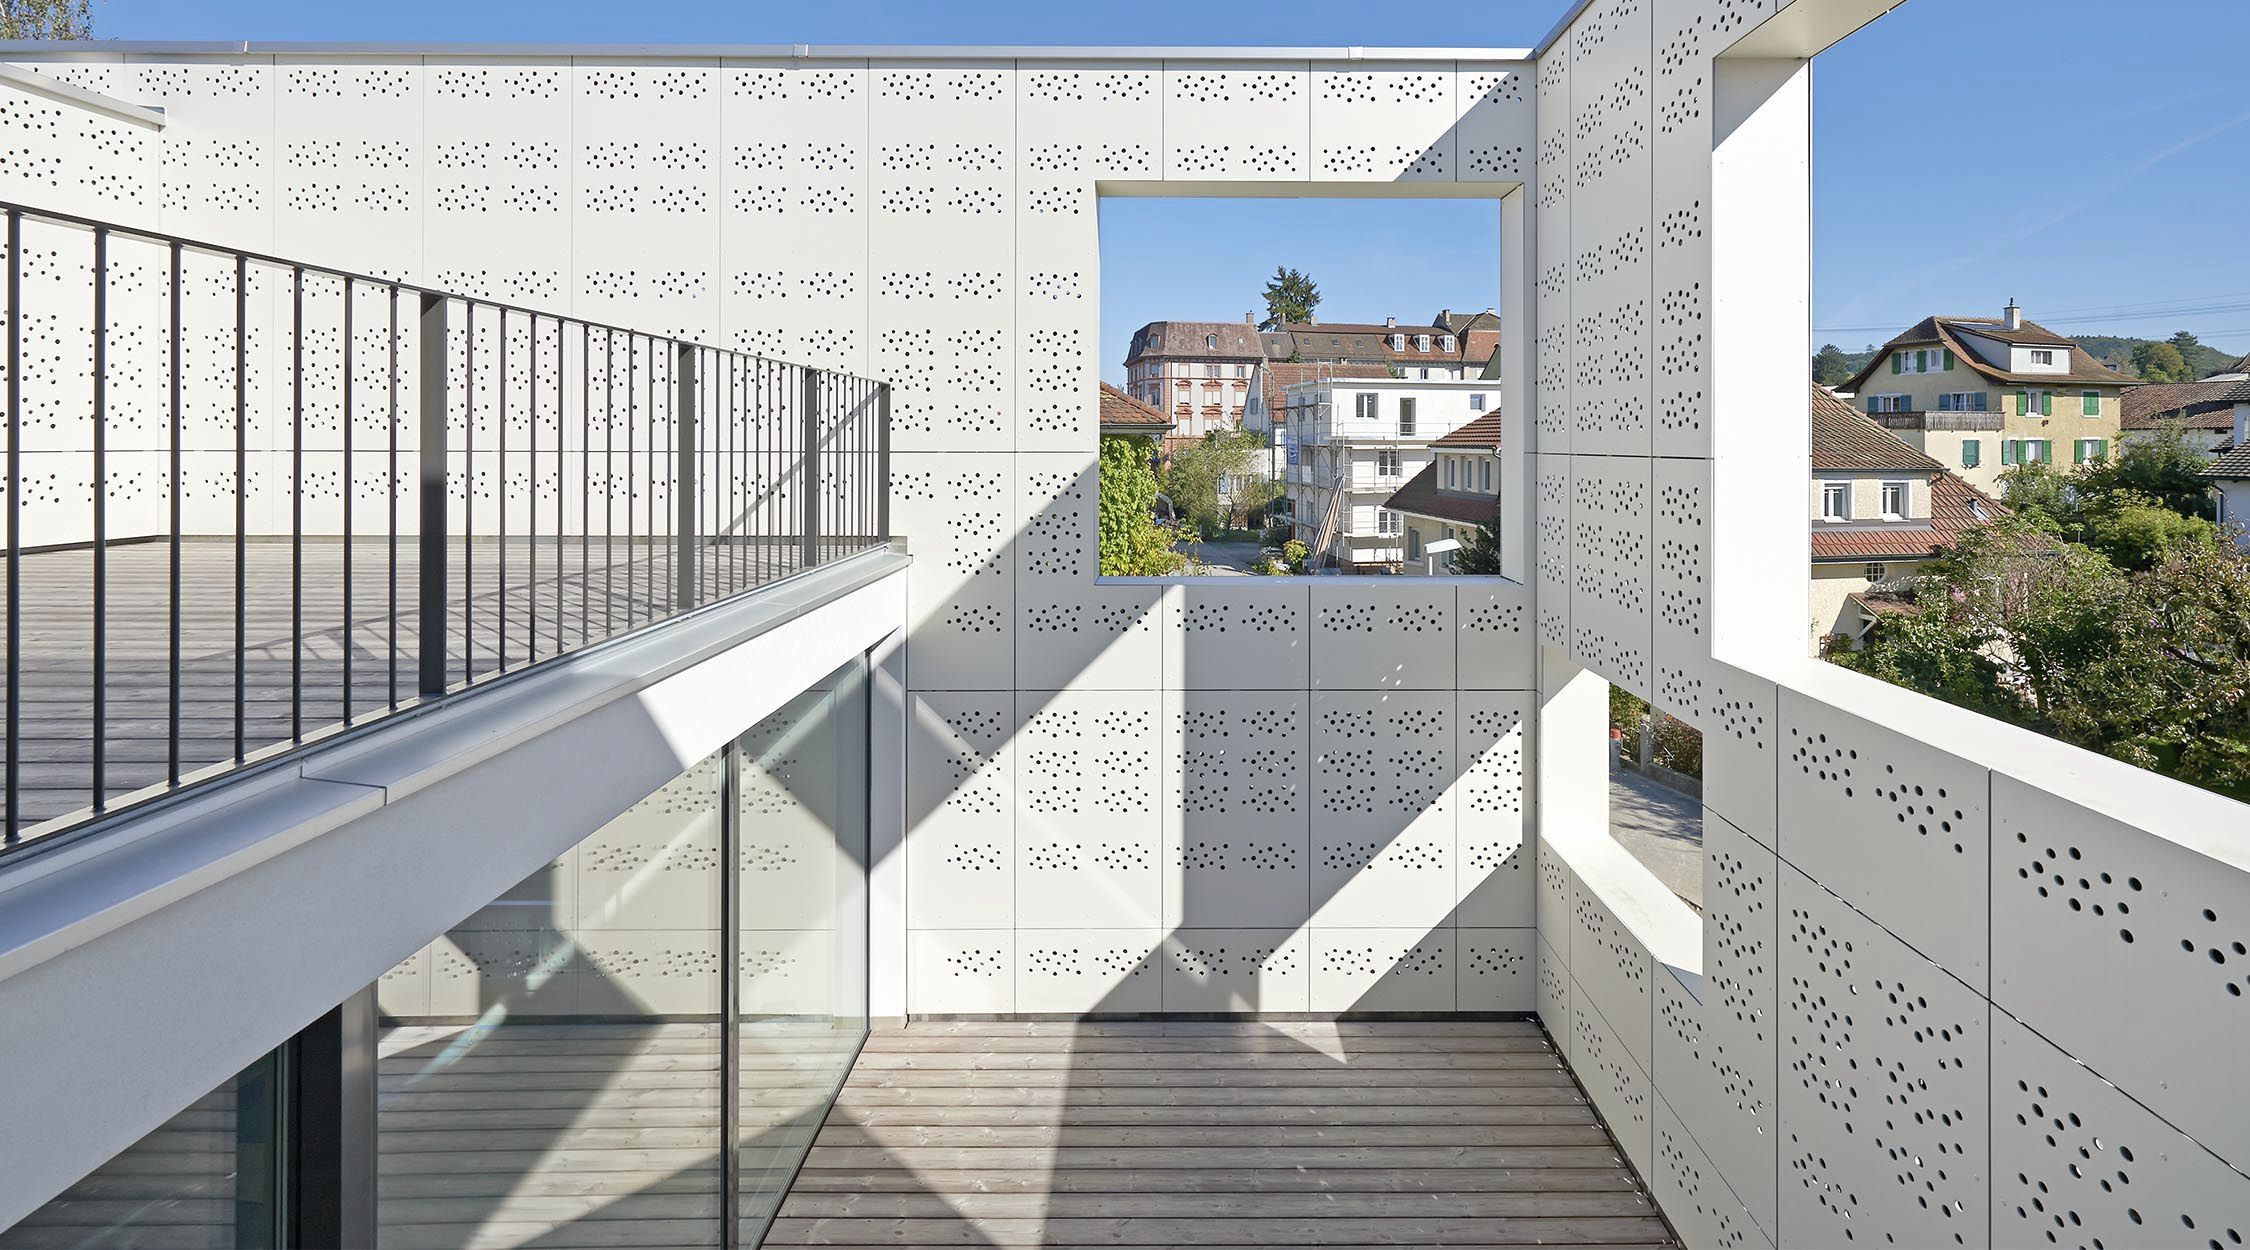 composite cladding perforated panel large format patio